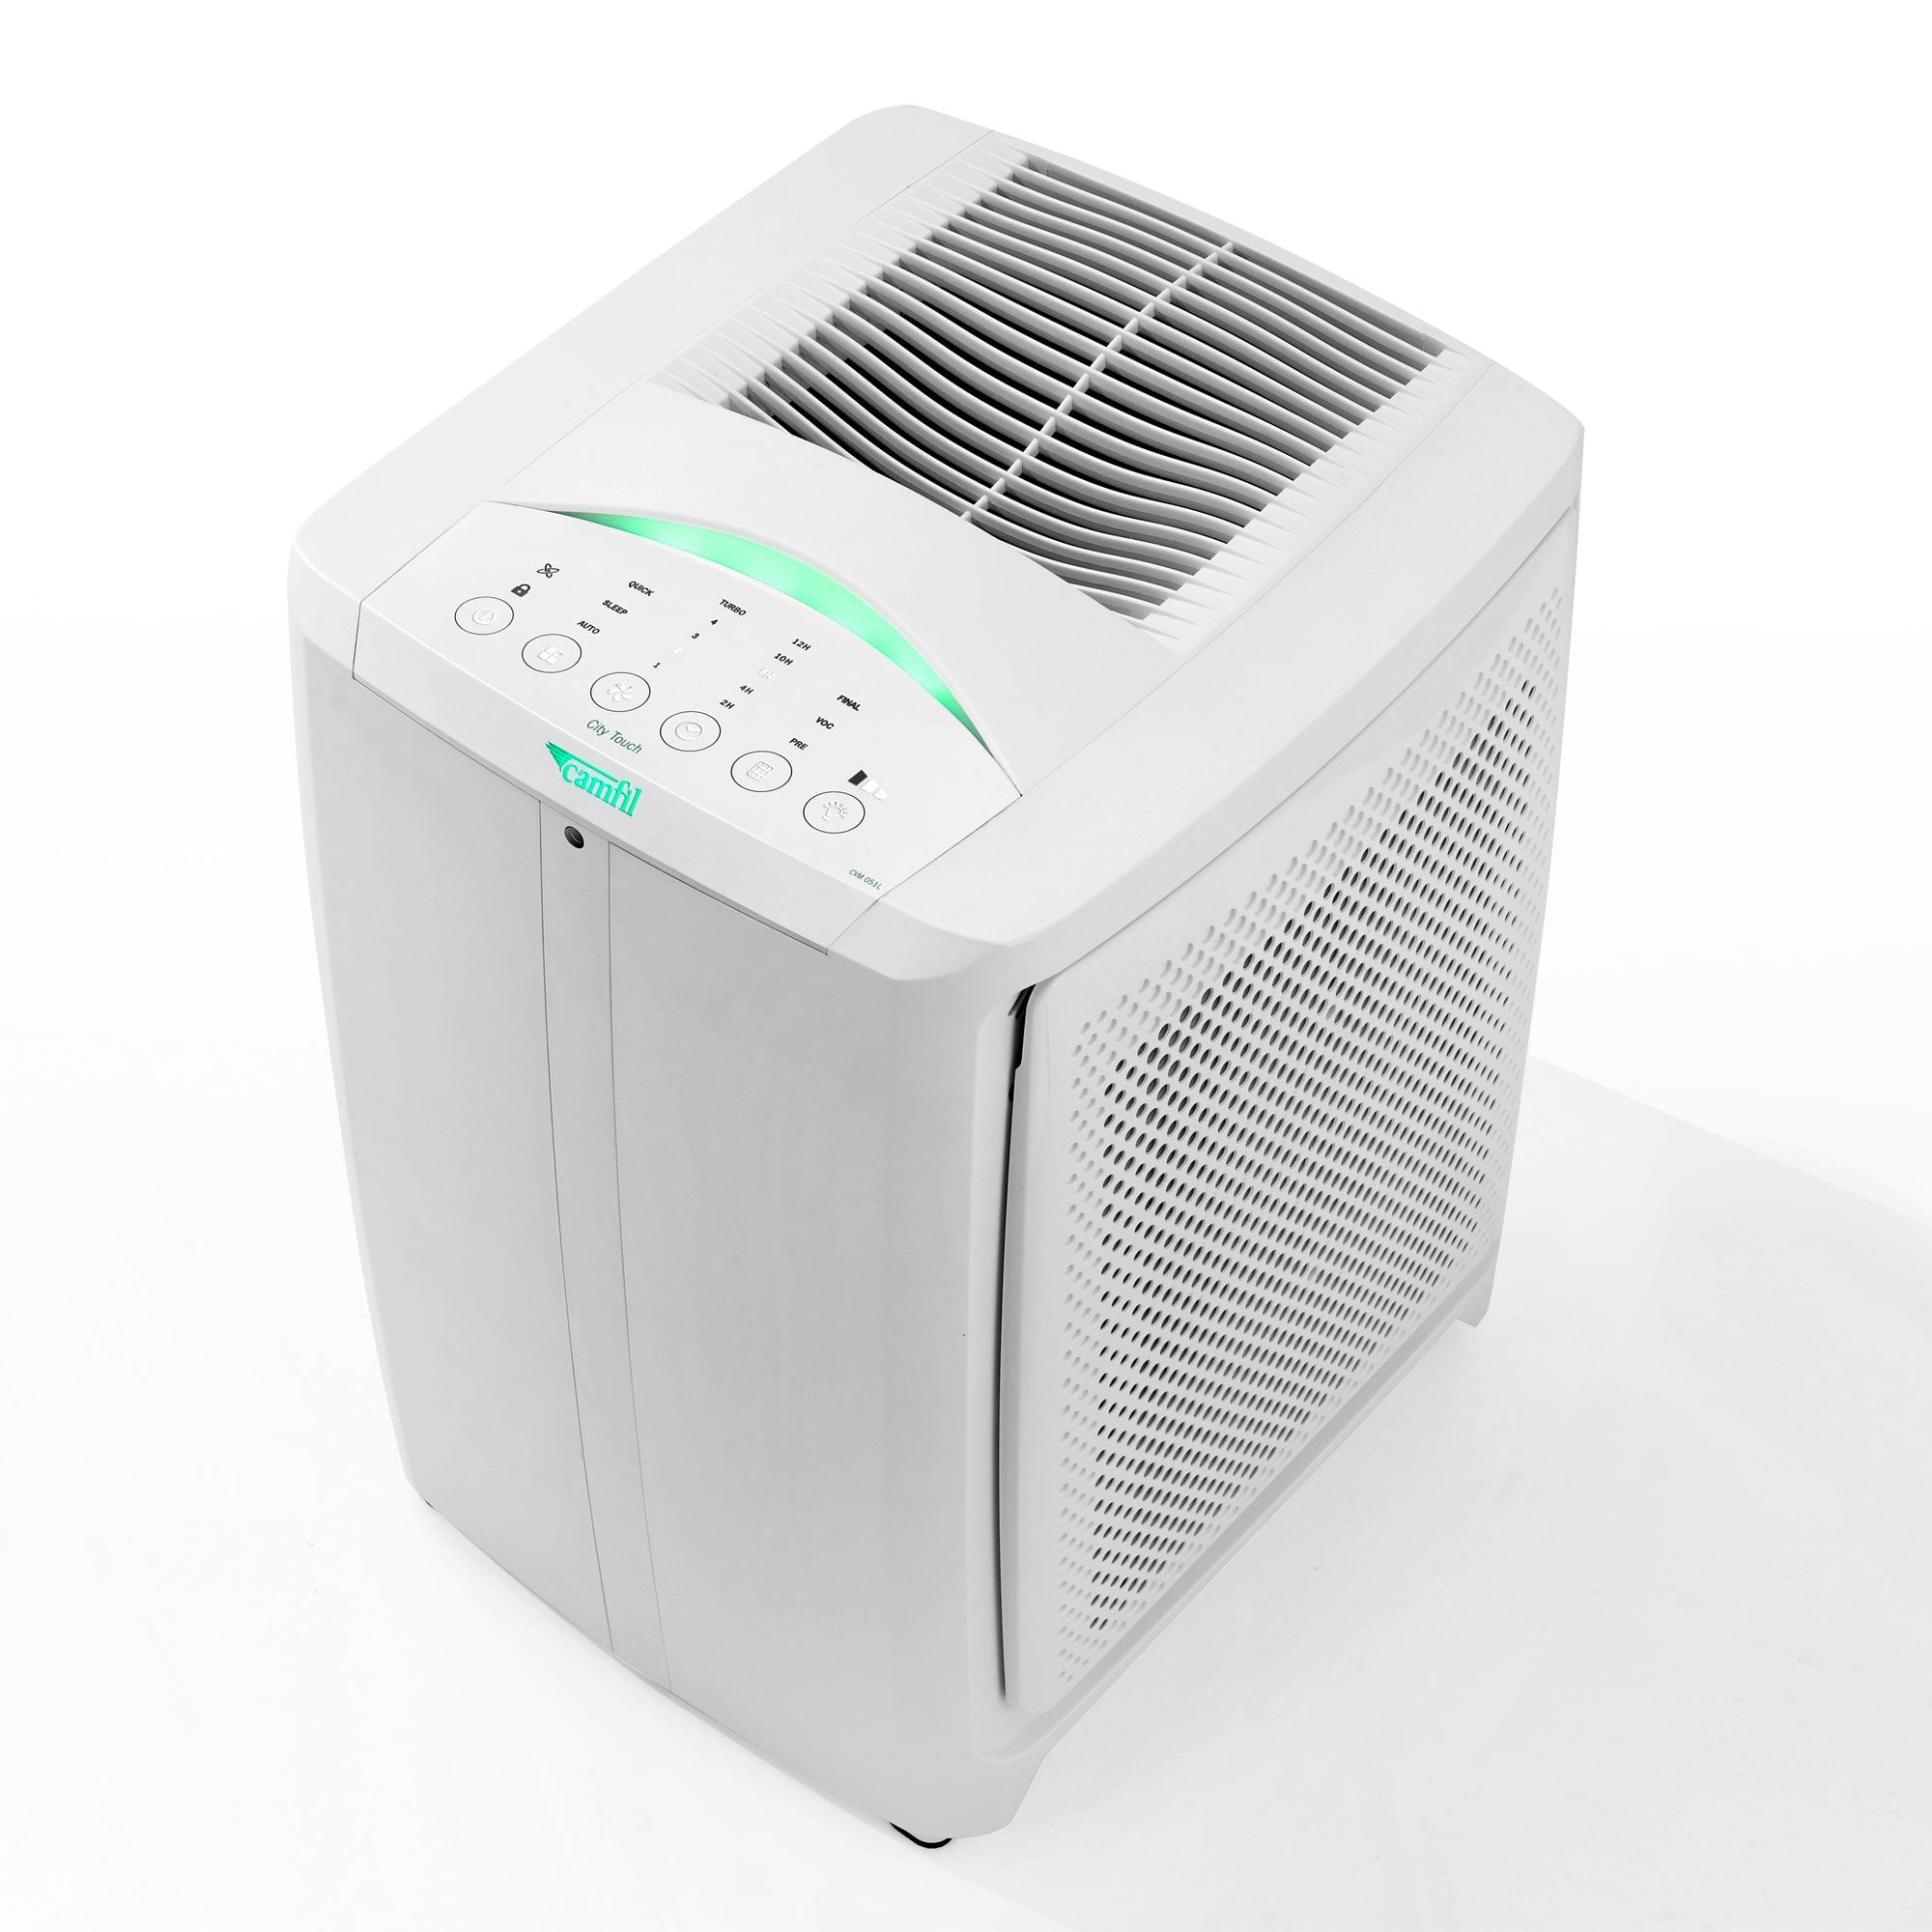 Unit for in Dorset | Air Purifiers & Dehumidifiers for Sale